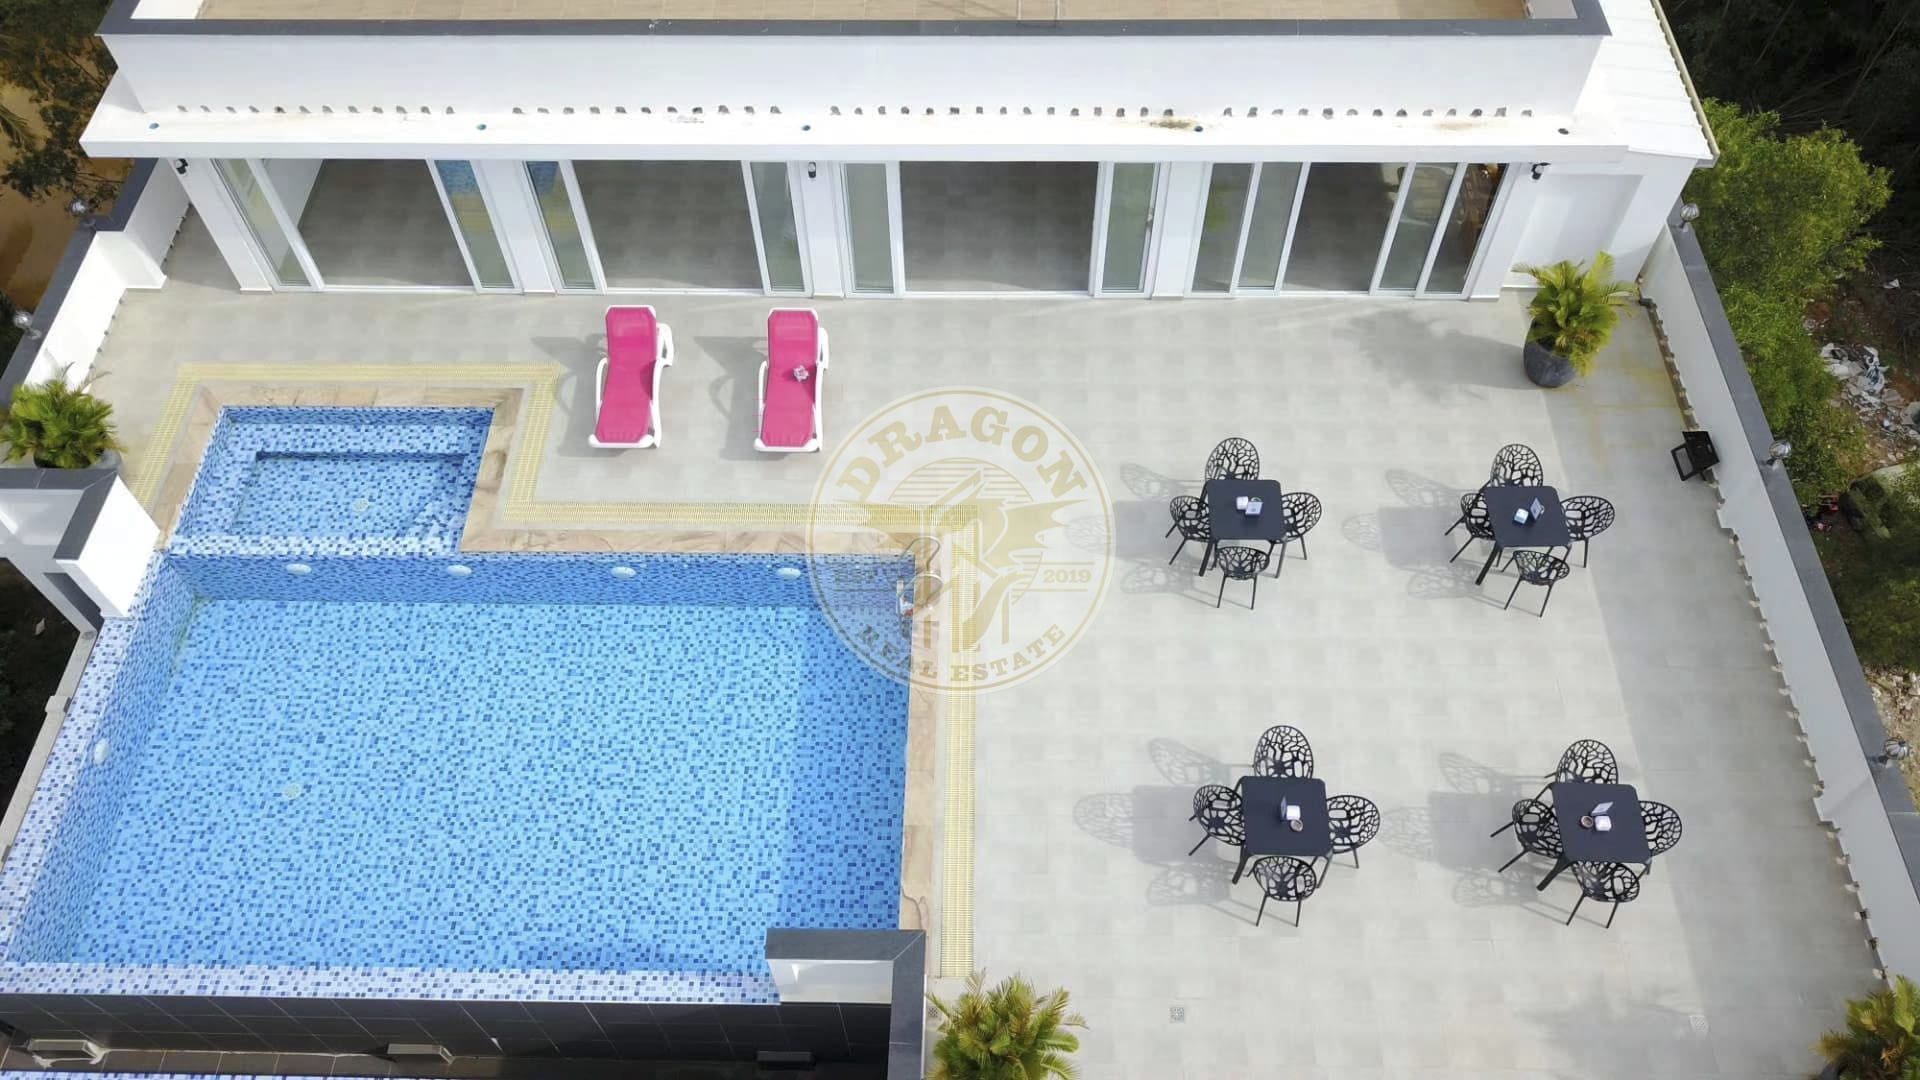 Fully-Furnished Studio Apartment for 300 Dollar a Month. Sihanoukville Property